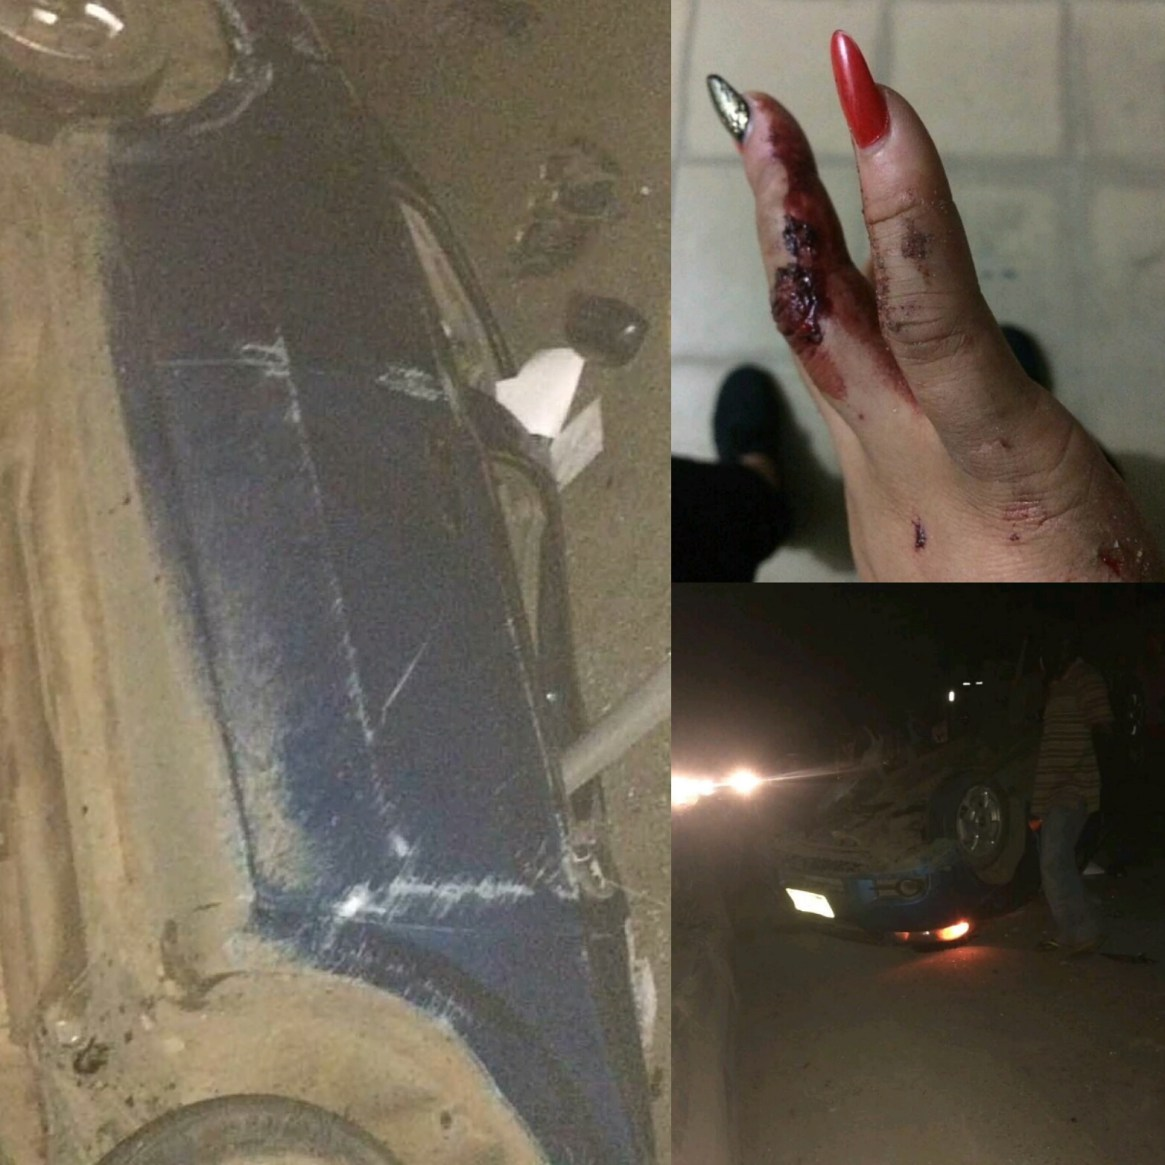 Post & Delete: Rosaline Meurer survives ghastly accident, shares photo of the damaged car and says God will flog her enemies